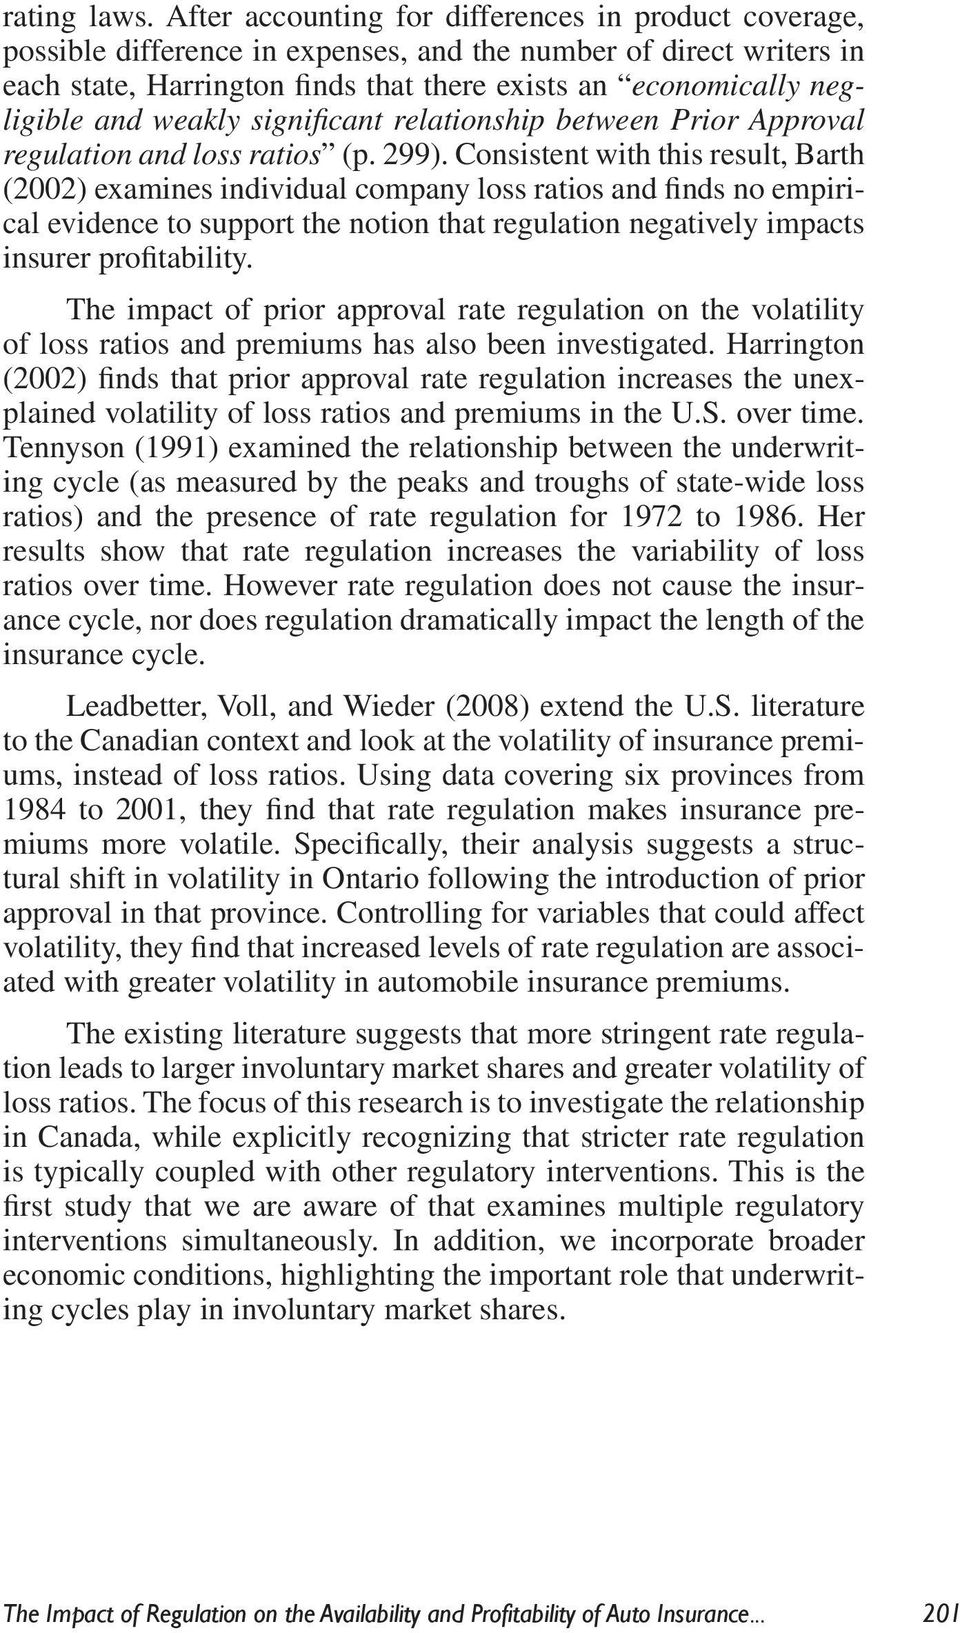 and weakly significant relationship between Prior Approval regulation and loss ratios (p. 299).